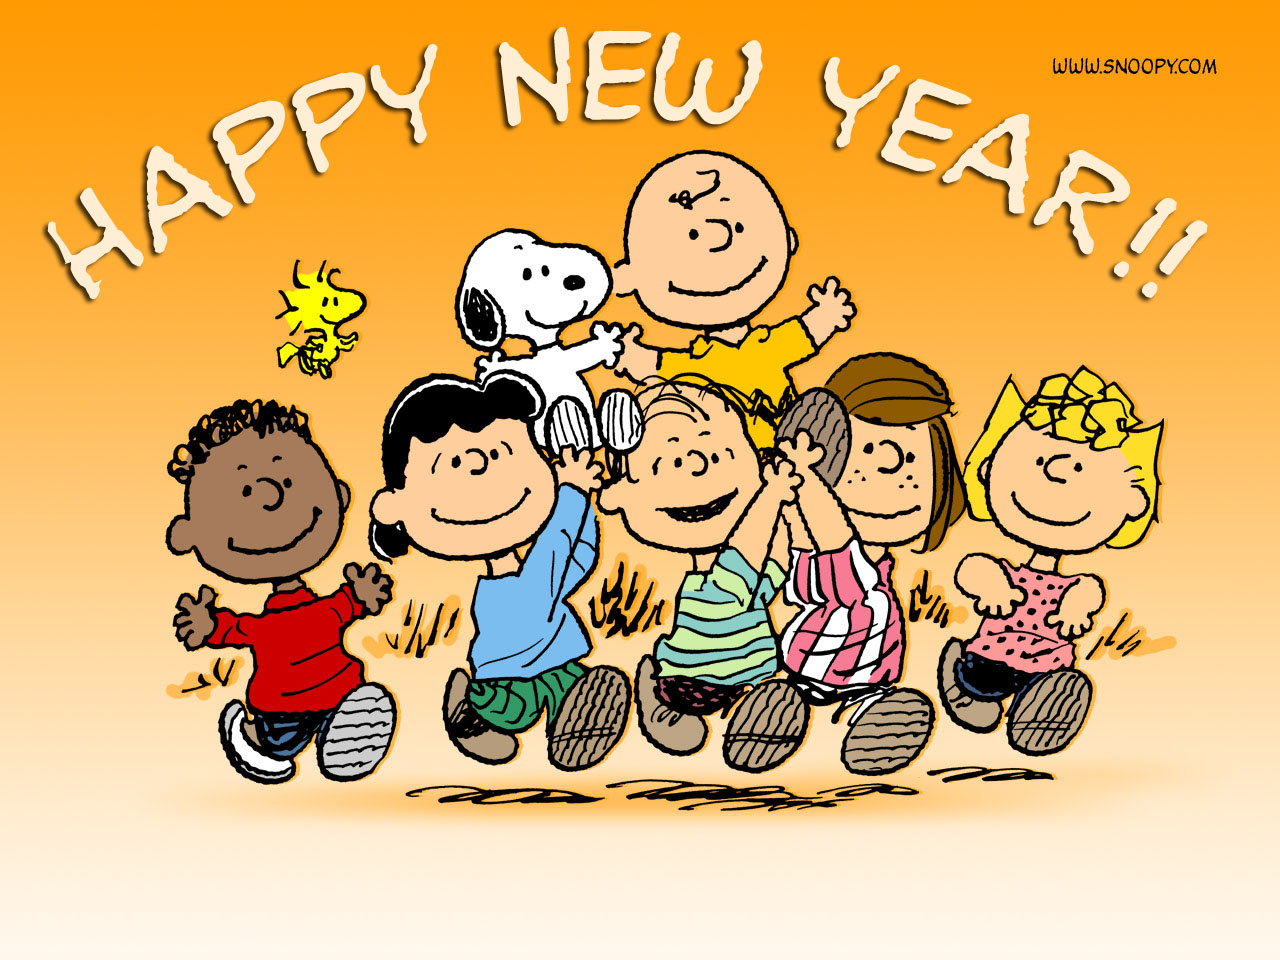 new year sms 2012 free sms sms message love sms funny sms sms text . 1280 x 960.Happy New Year 2014  My Love Messages